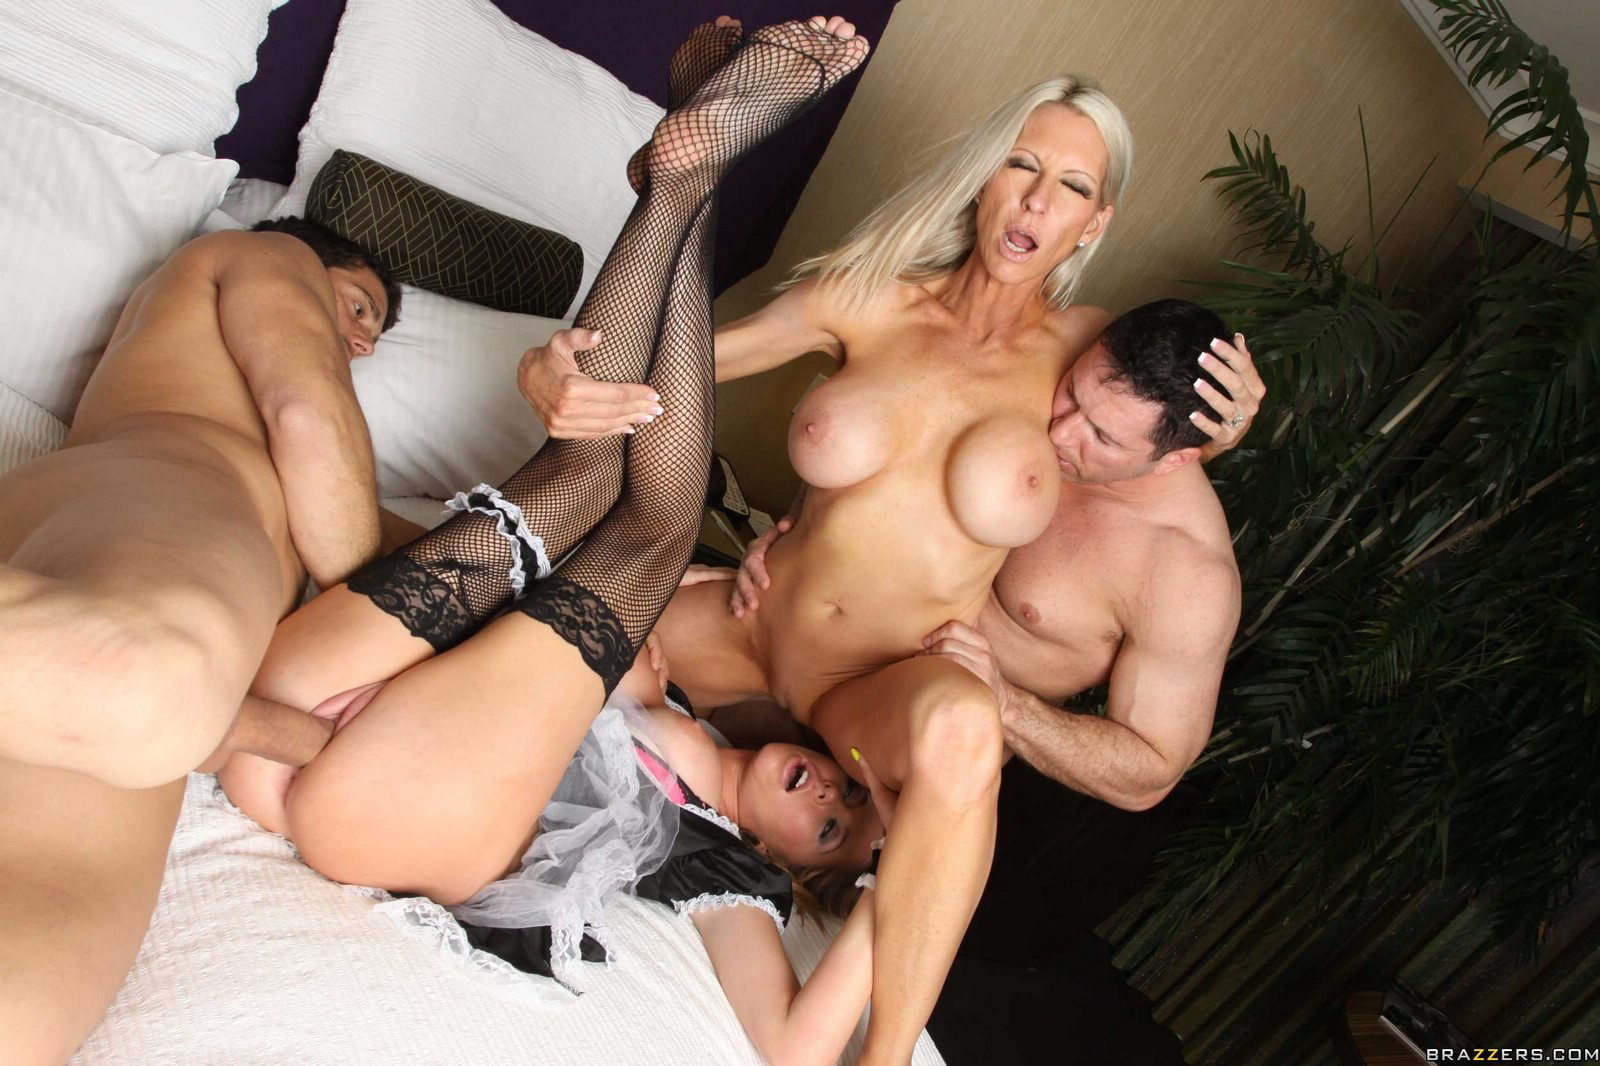 Emma starr fan gangbang recommend you